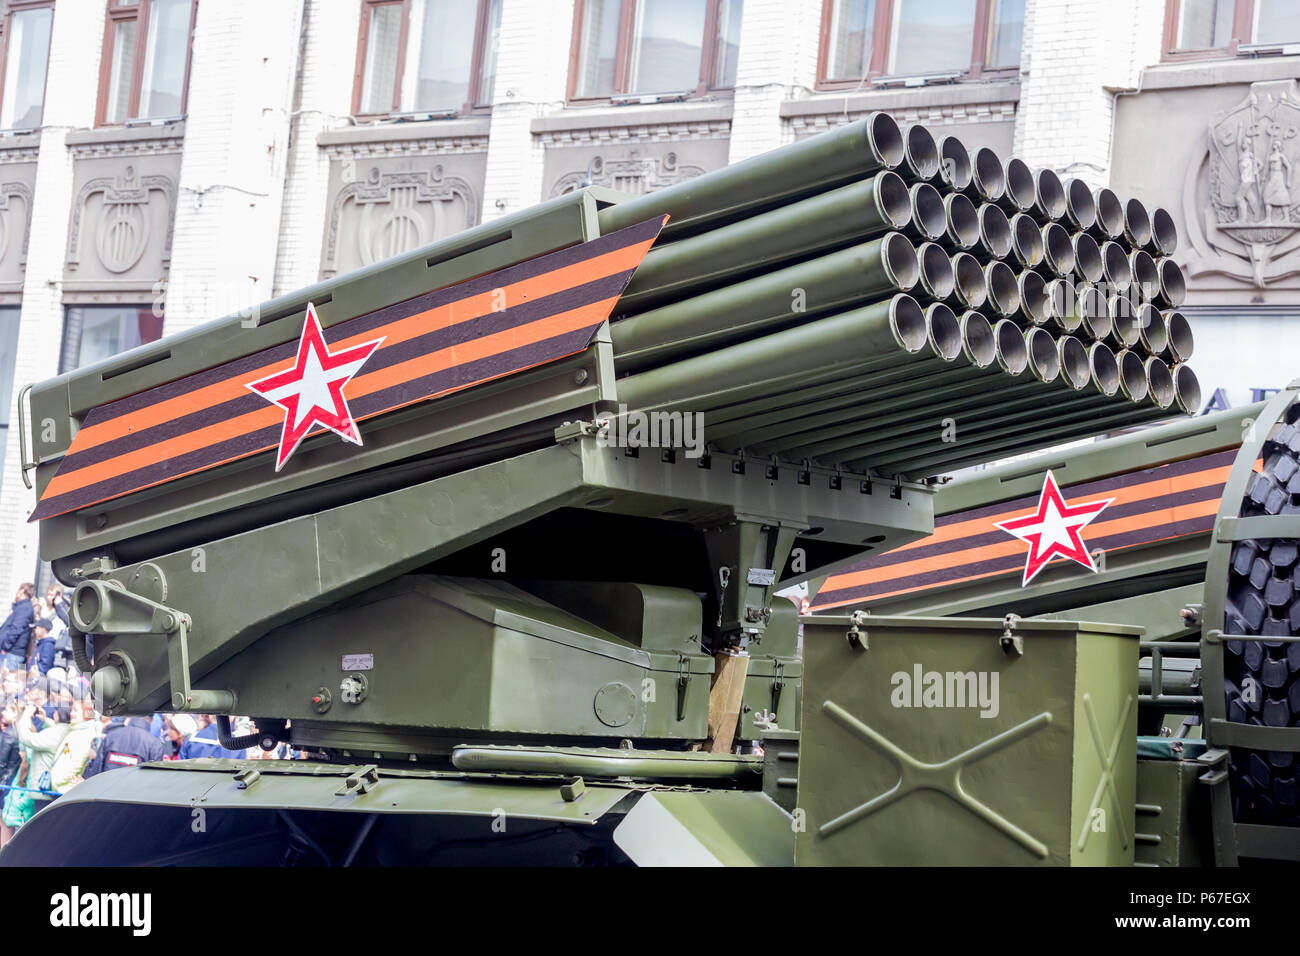 Russian (Soviet Union) rocket launcher 'Katyusha' on the parade on Victory Day on May 9. Russia, Vladivostok. - Stock Image